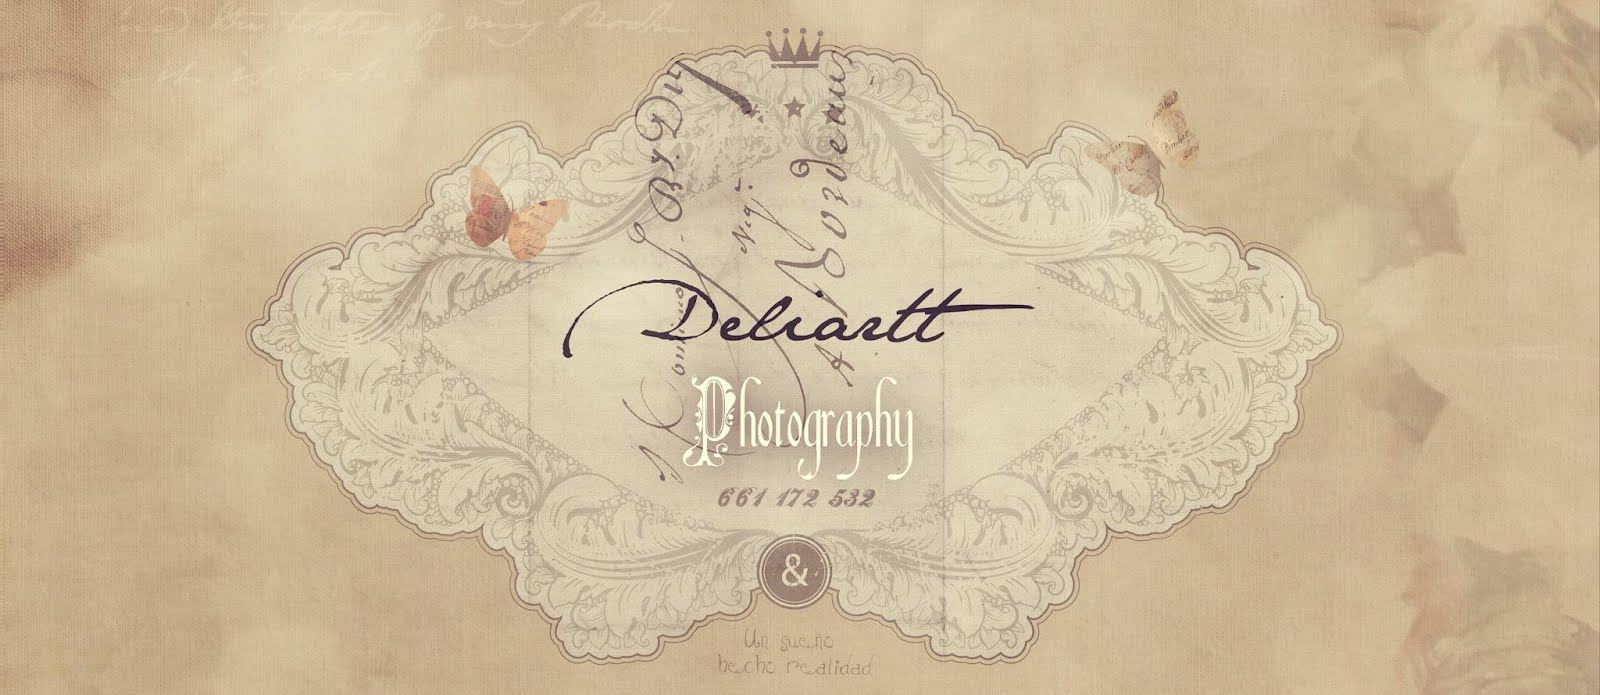 Deliartt Photography